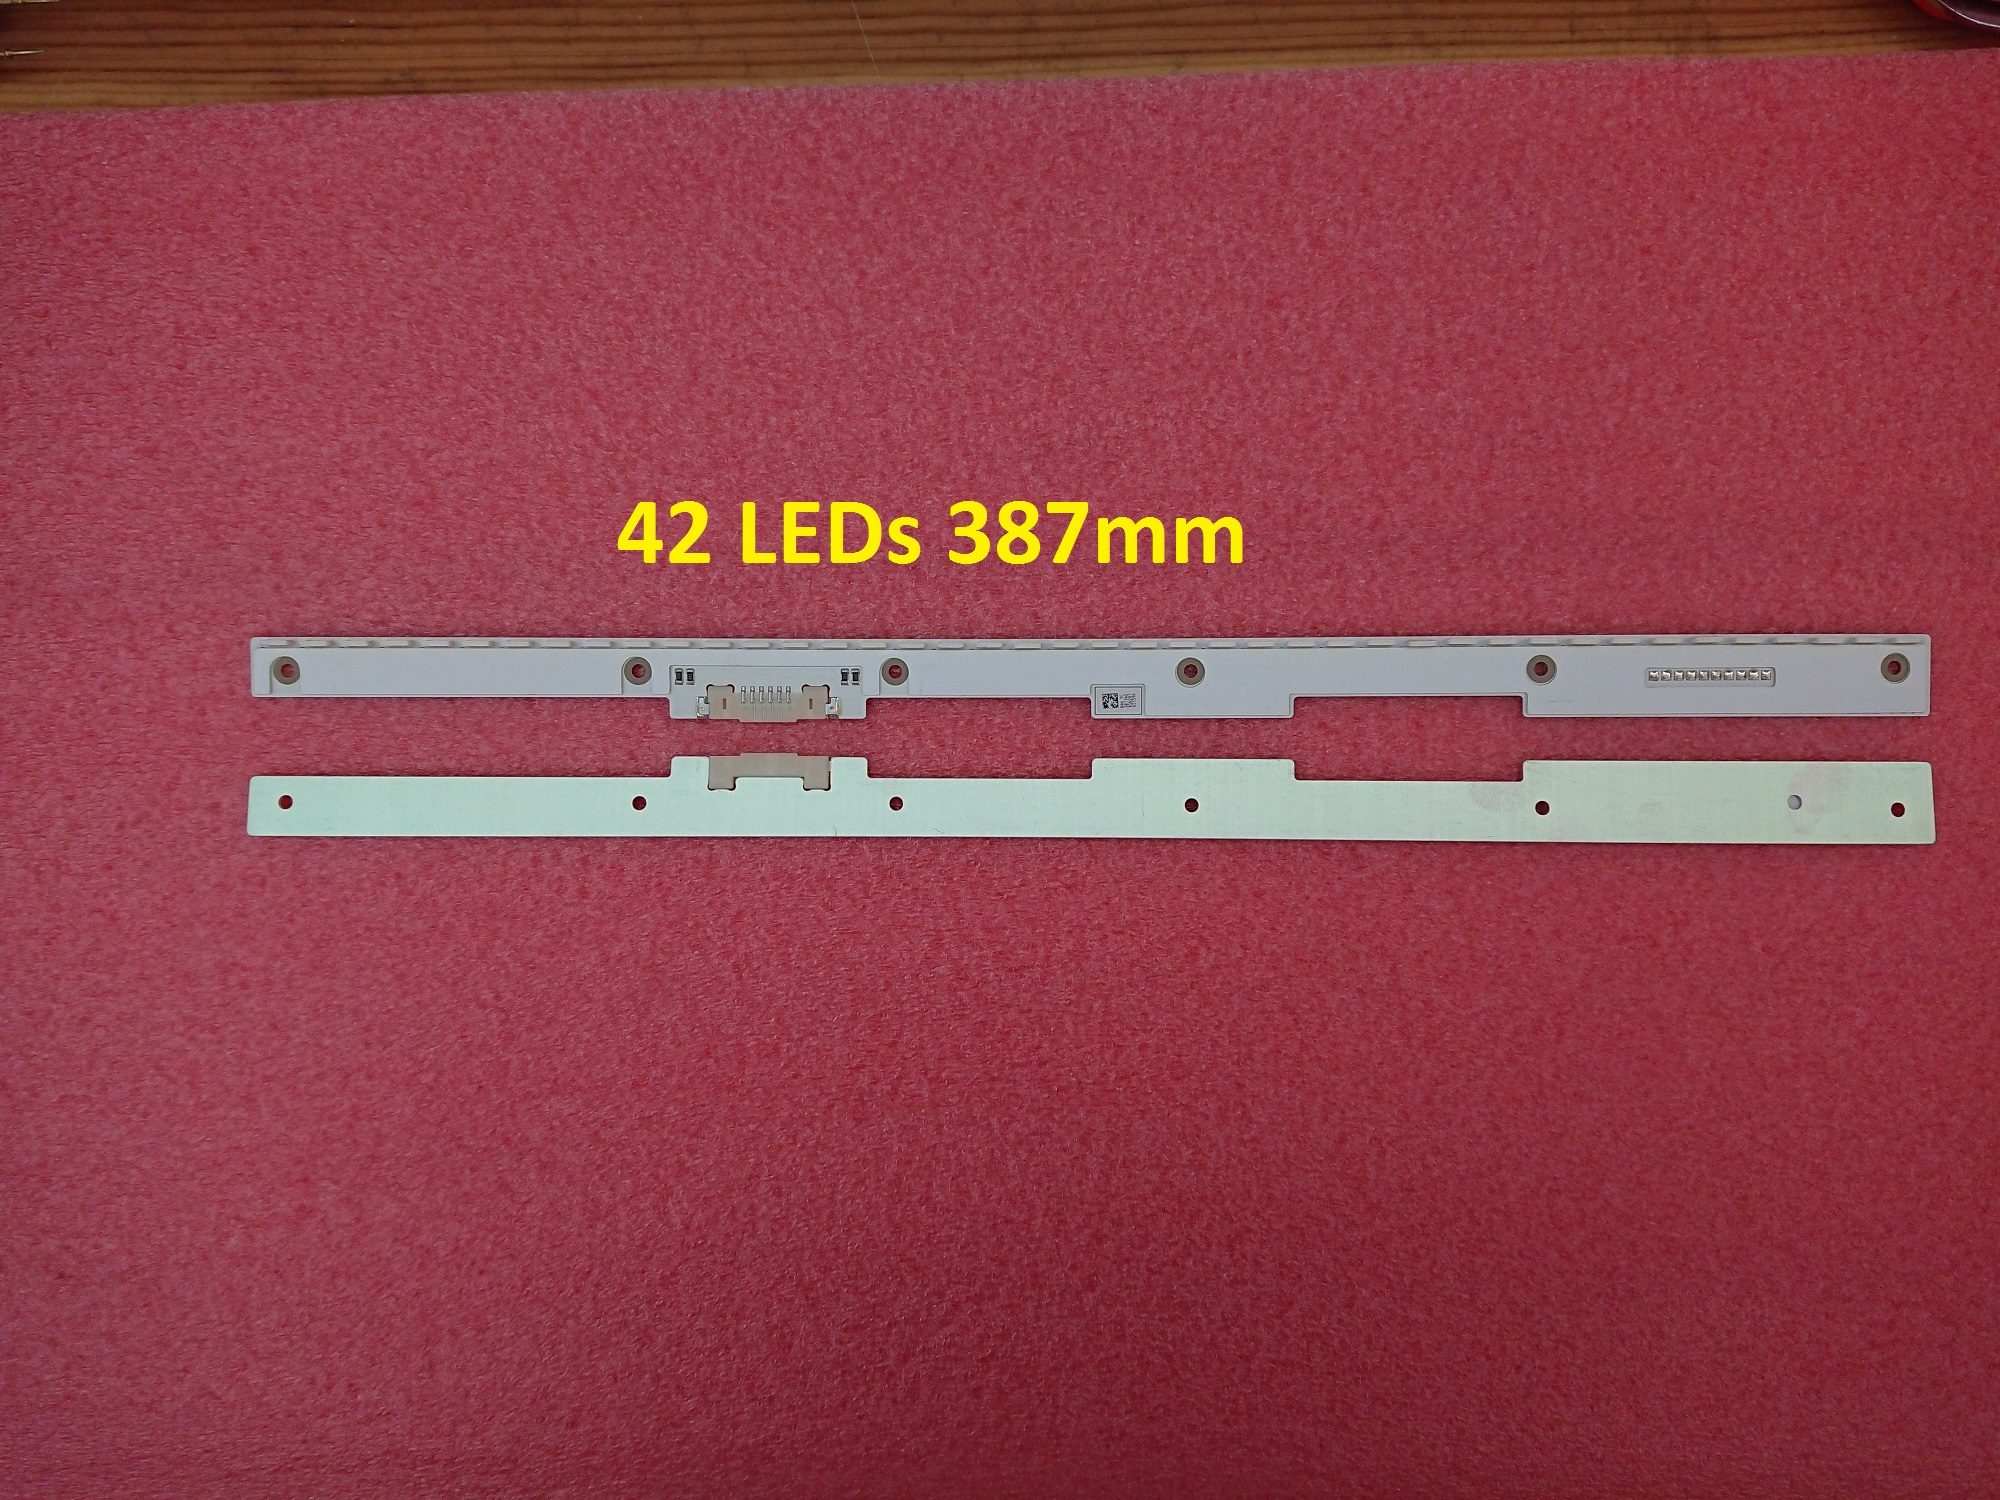 BN96-43359A BN96-39515A BN96-39513A LM41-00501A 42LED,price for 1 pcs led strip